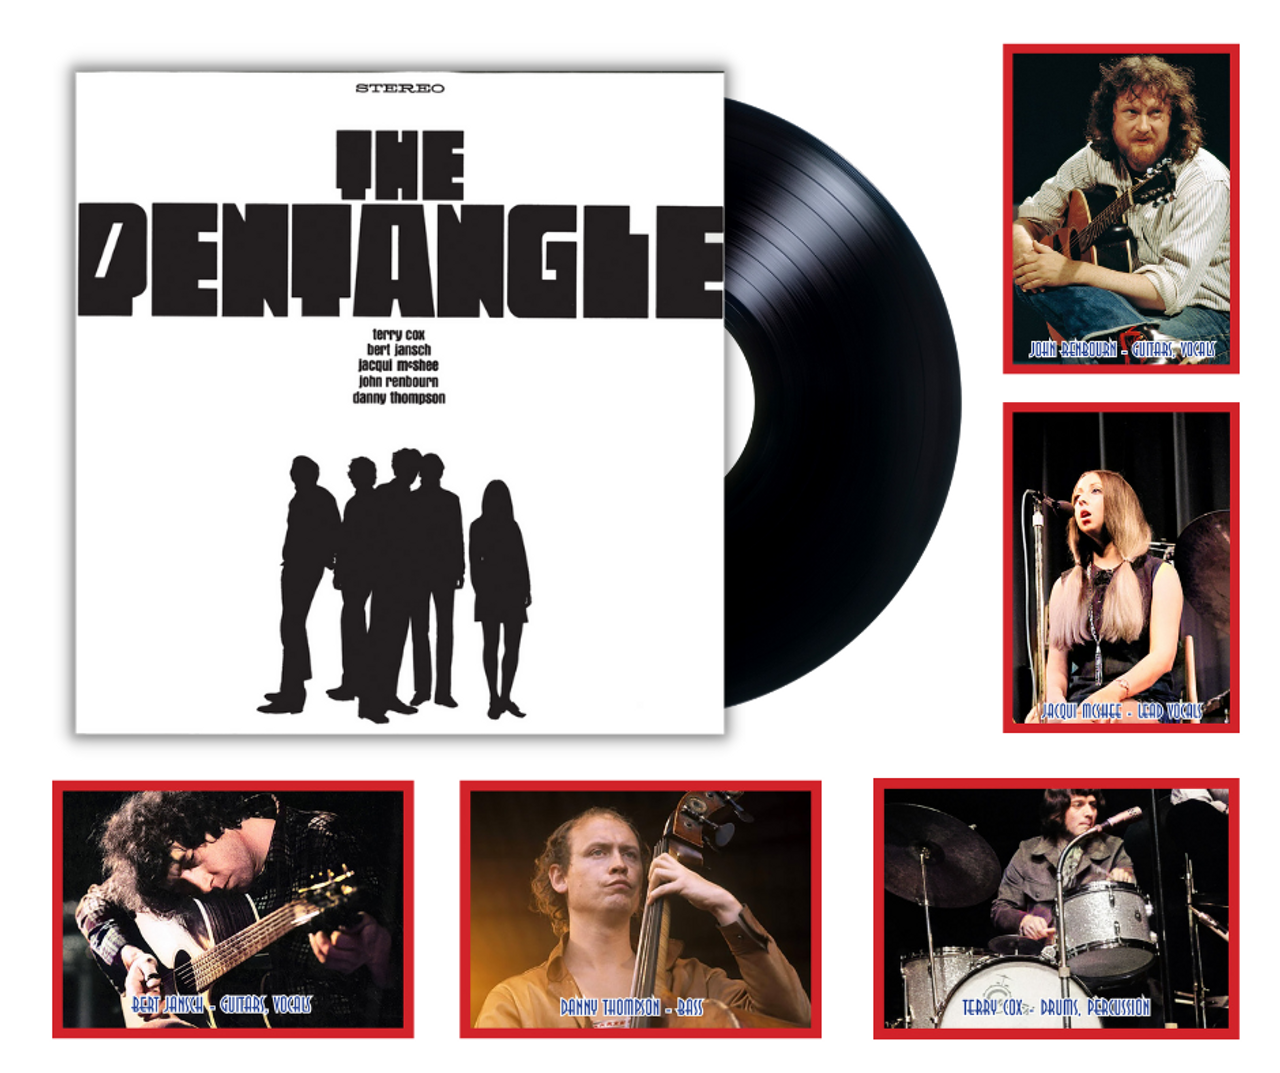 The Pentangle by British folk-jazz band The Pentangle available on 180 gram vinyl